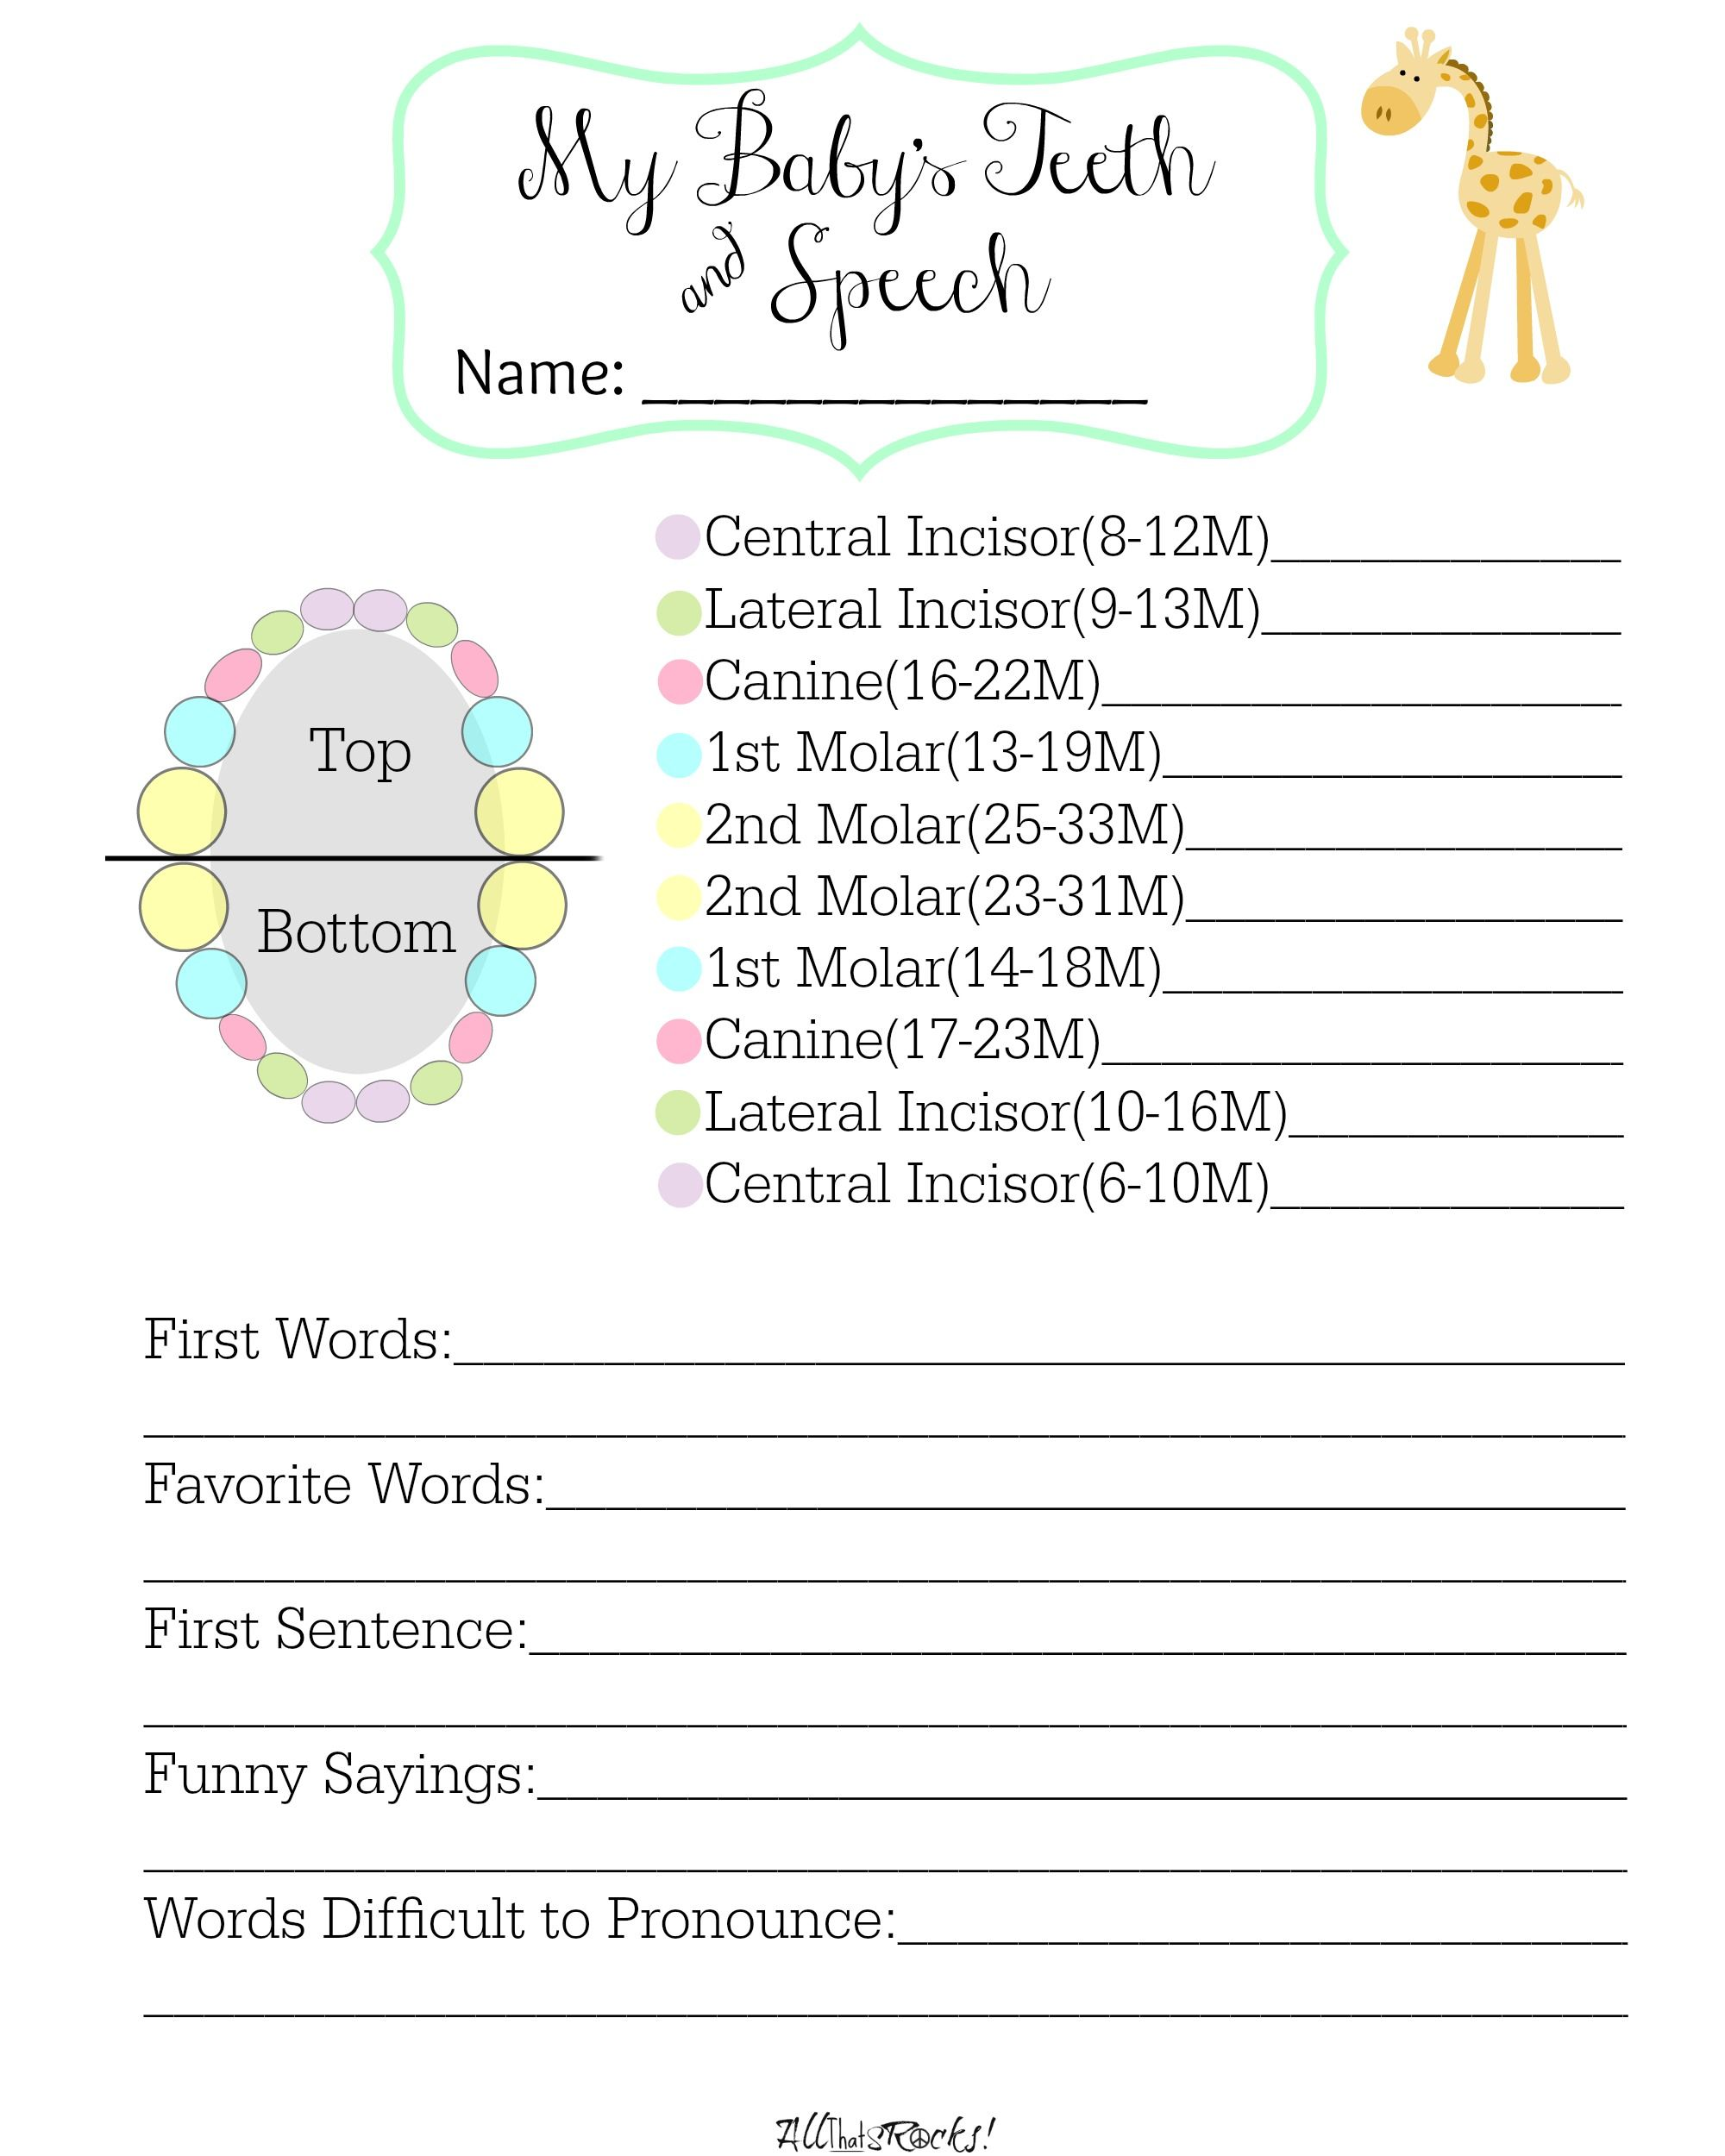 Track Baby S Teeth And Speech With This Free Printable Allthatsrocks